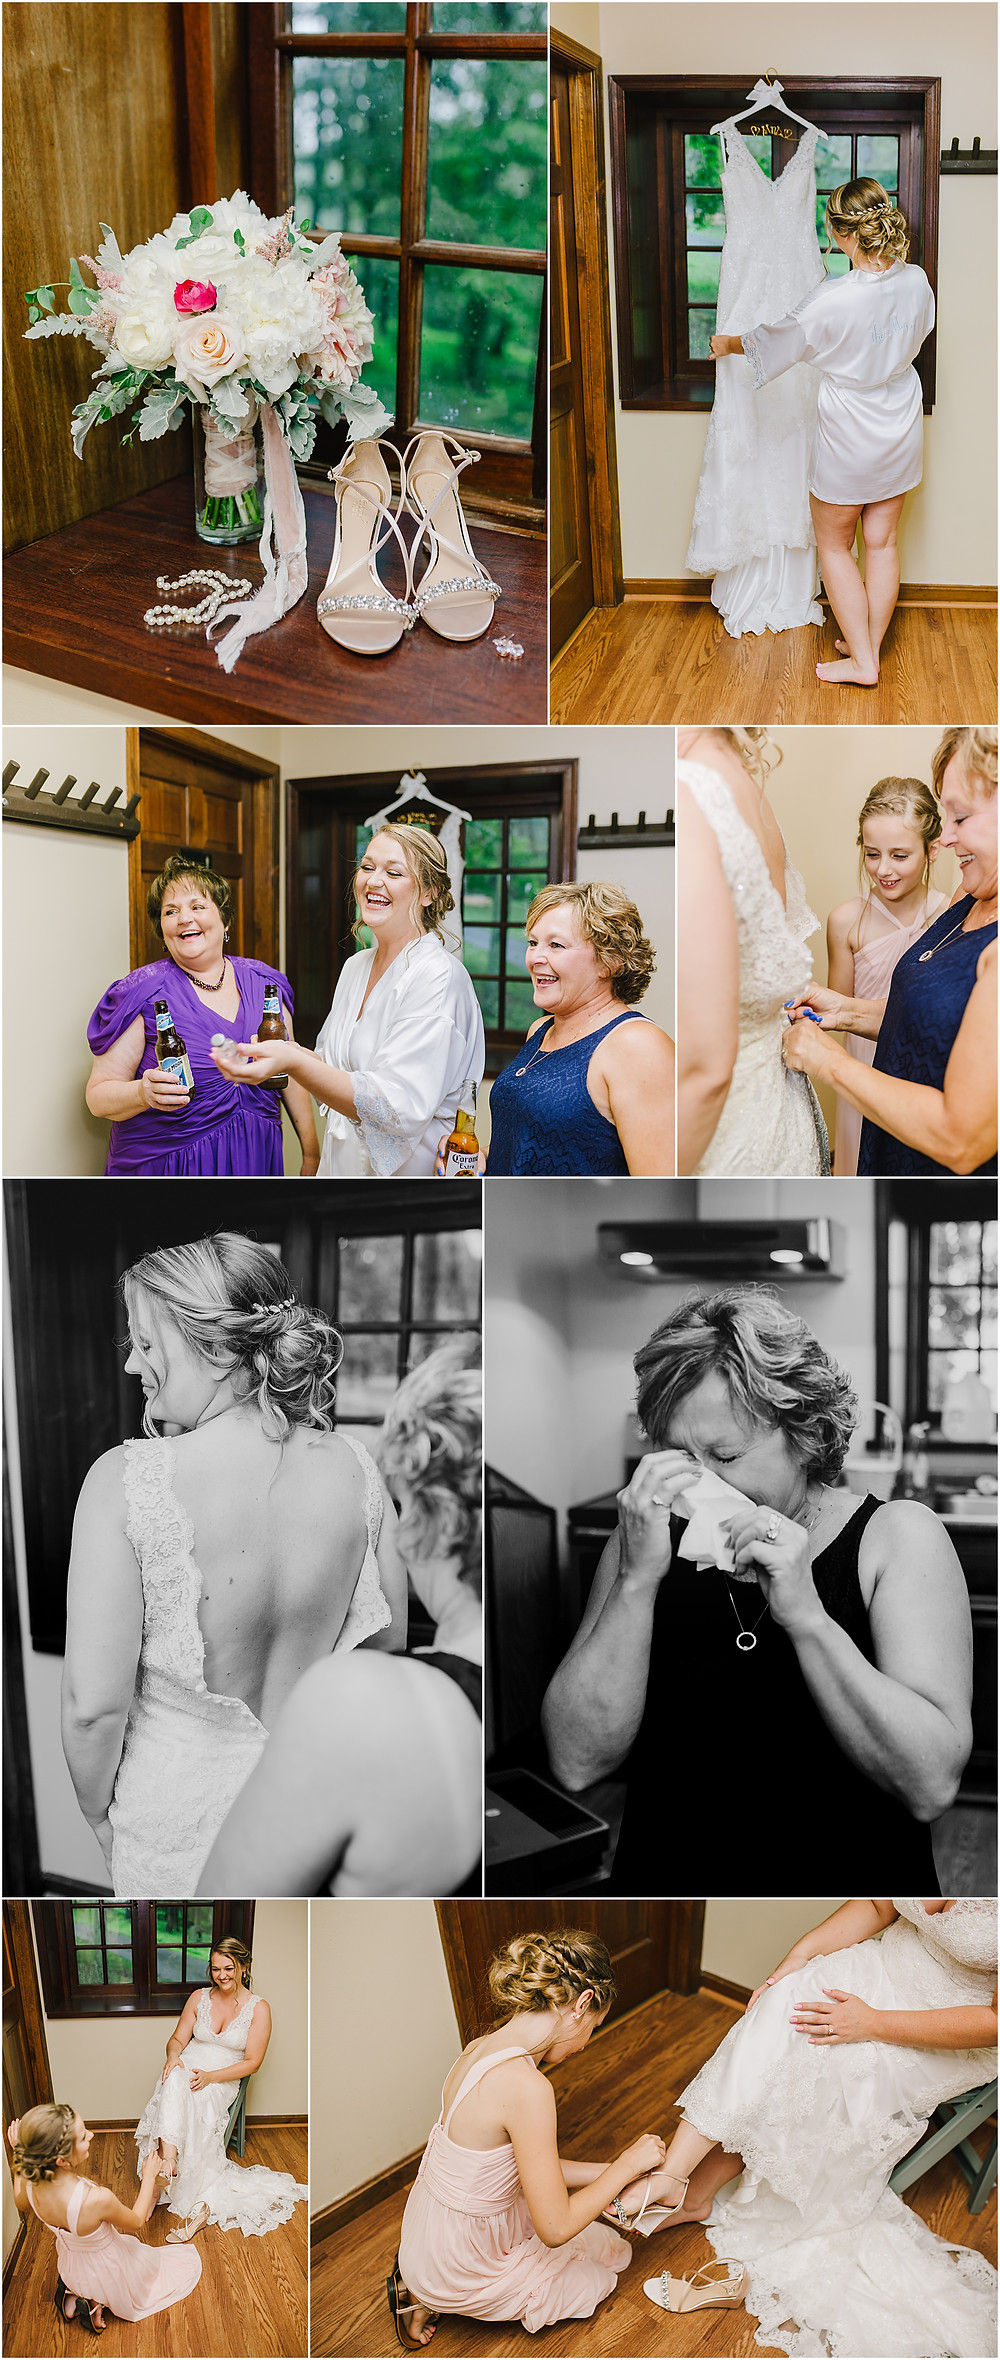 Getting Ready on your wedding day - Gambrill State Park - Frederick Maryland Wedding Photographer